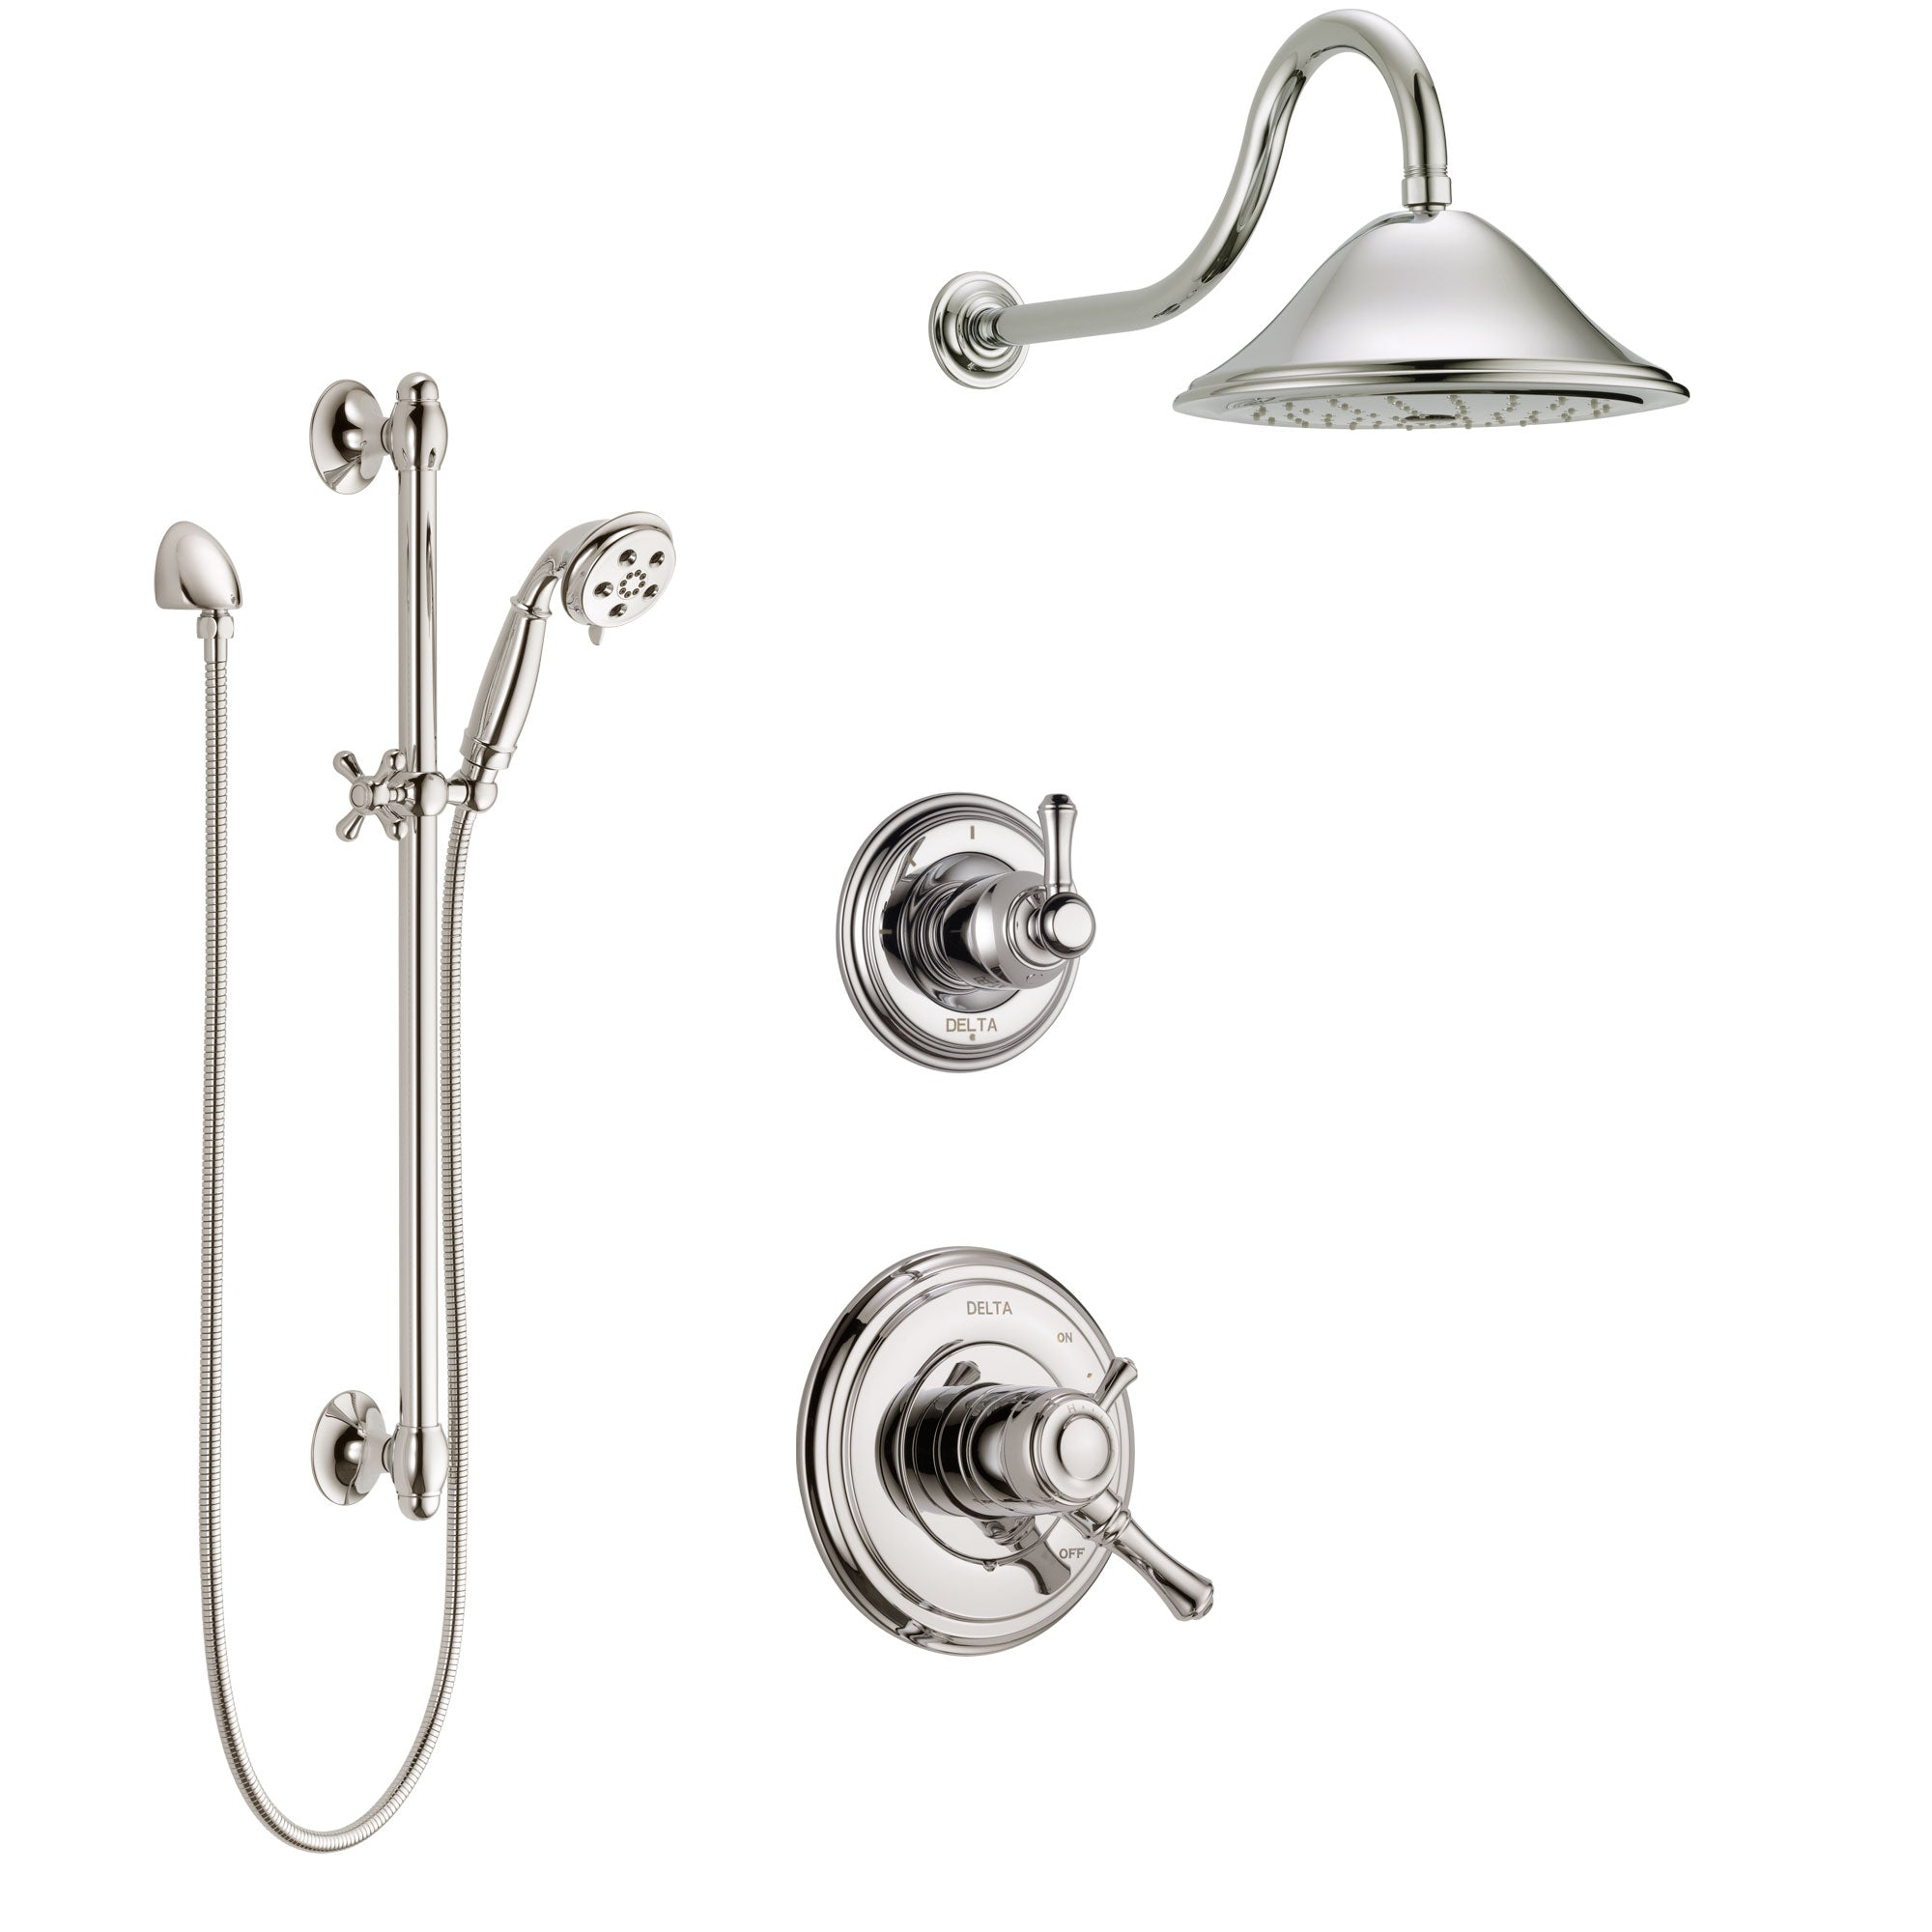 Delta Cassidy Polished Nickel Finish Shower System with Dual Control Handle, 3-Setting Diverter, Showerhead, and Hand Shower with Slidebar SS1797PN2